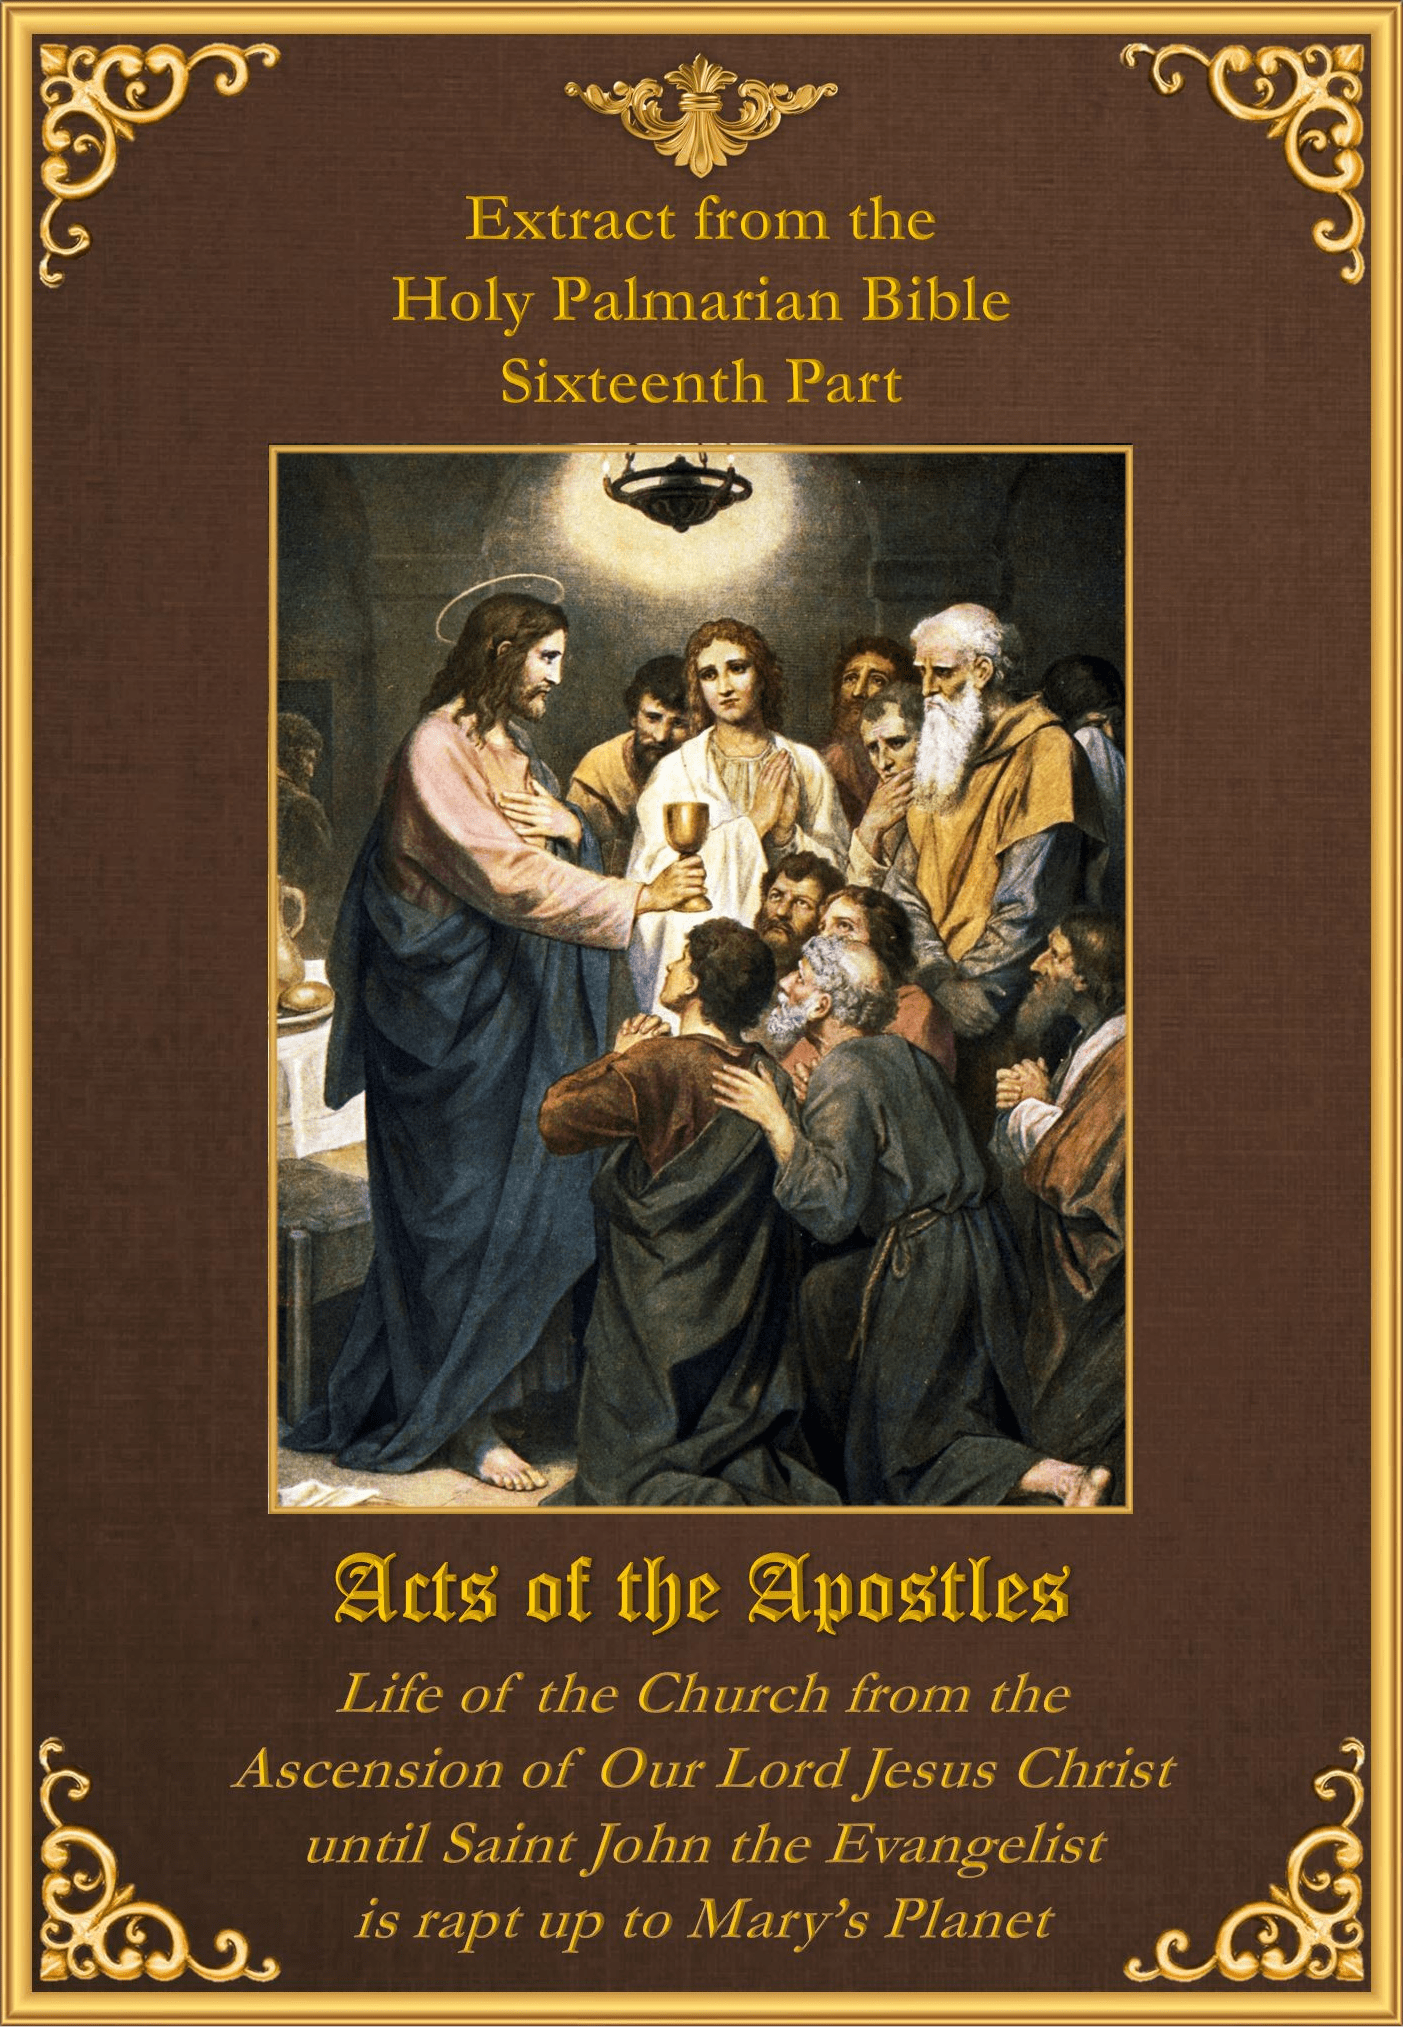 """<a href=""""/wp-content/uploads/2019/06/Acts-of-the-Apostles-English.pdf"""" title=""""Acts of the Apostles"""">Acts of the Apostles <br><br>Zobacz więcej</a>"""